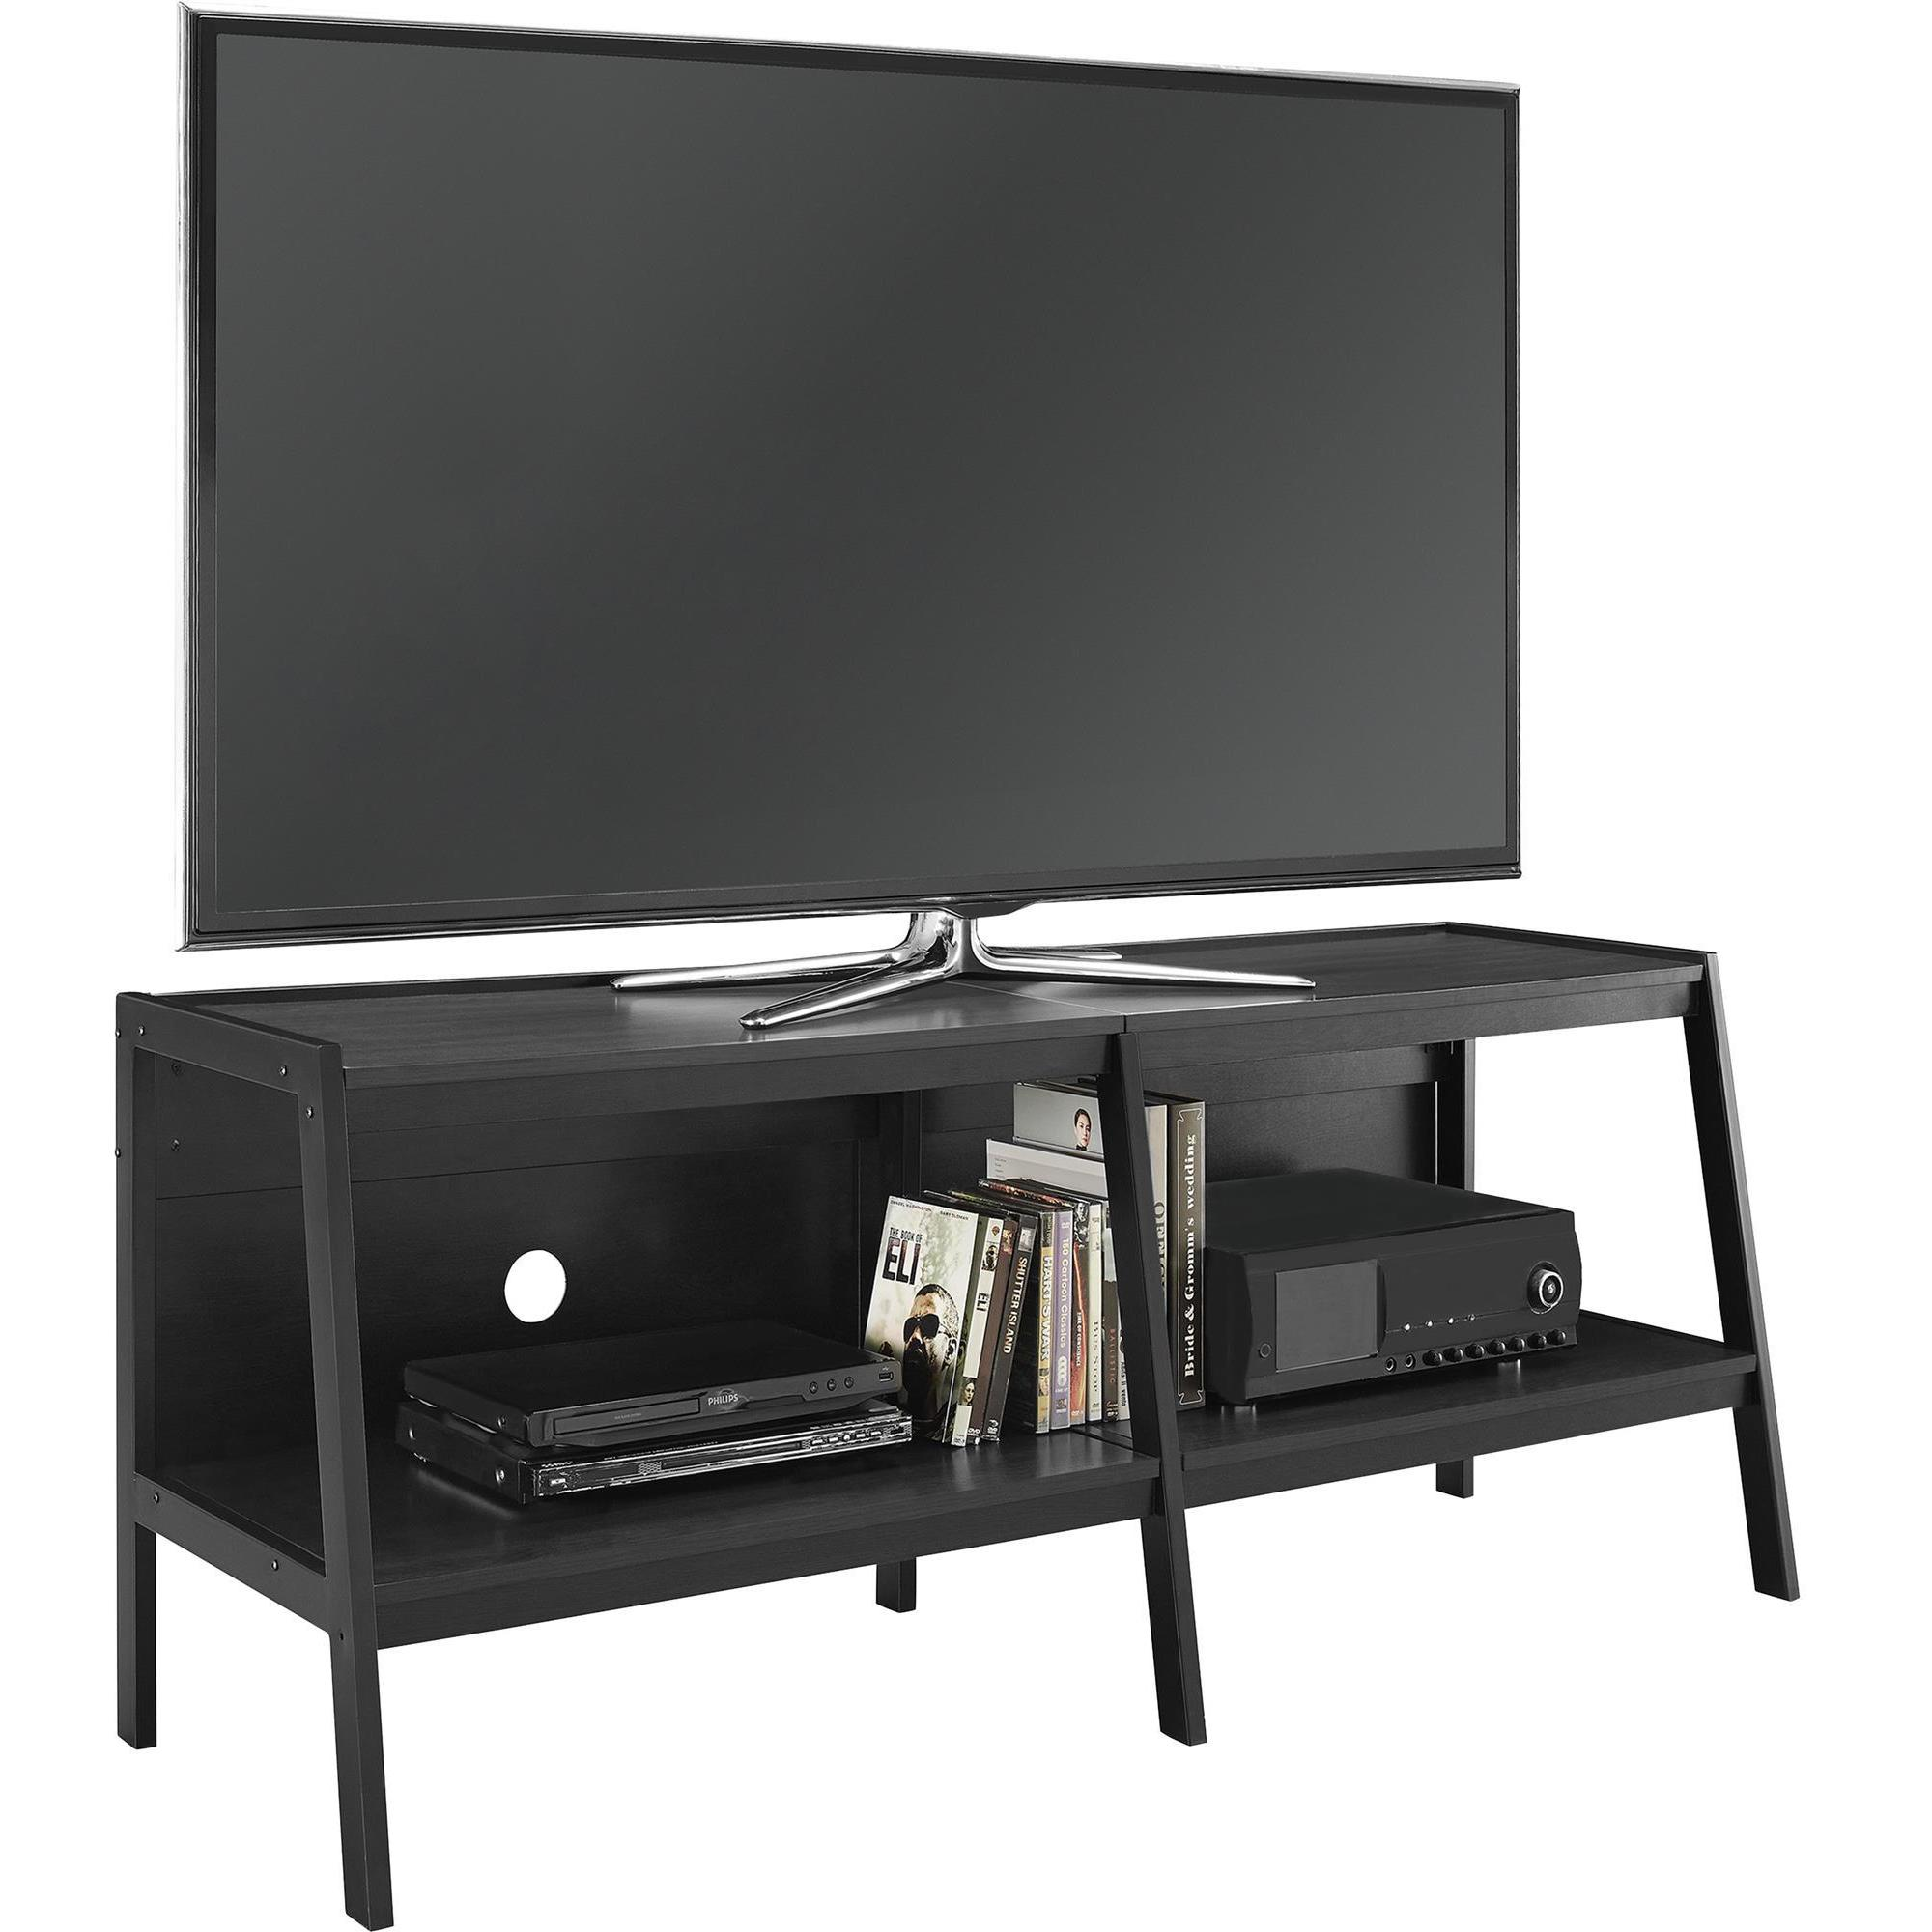 bd tv x m large j bn un samsung crooked le pedestal in review is stand